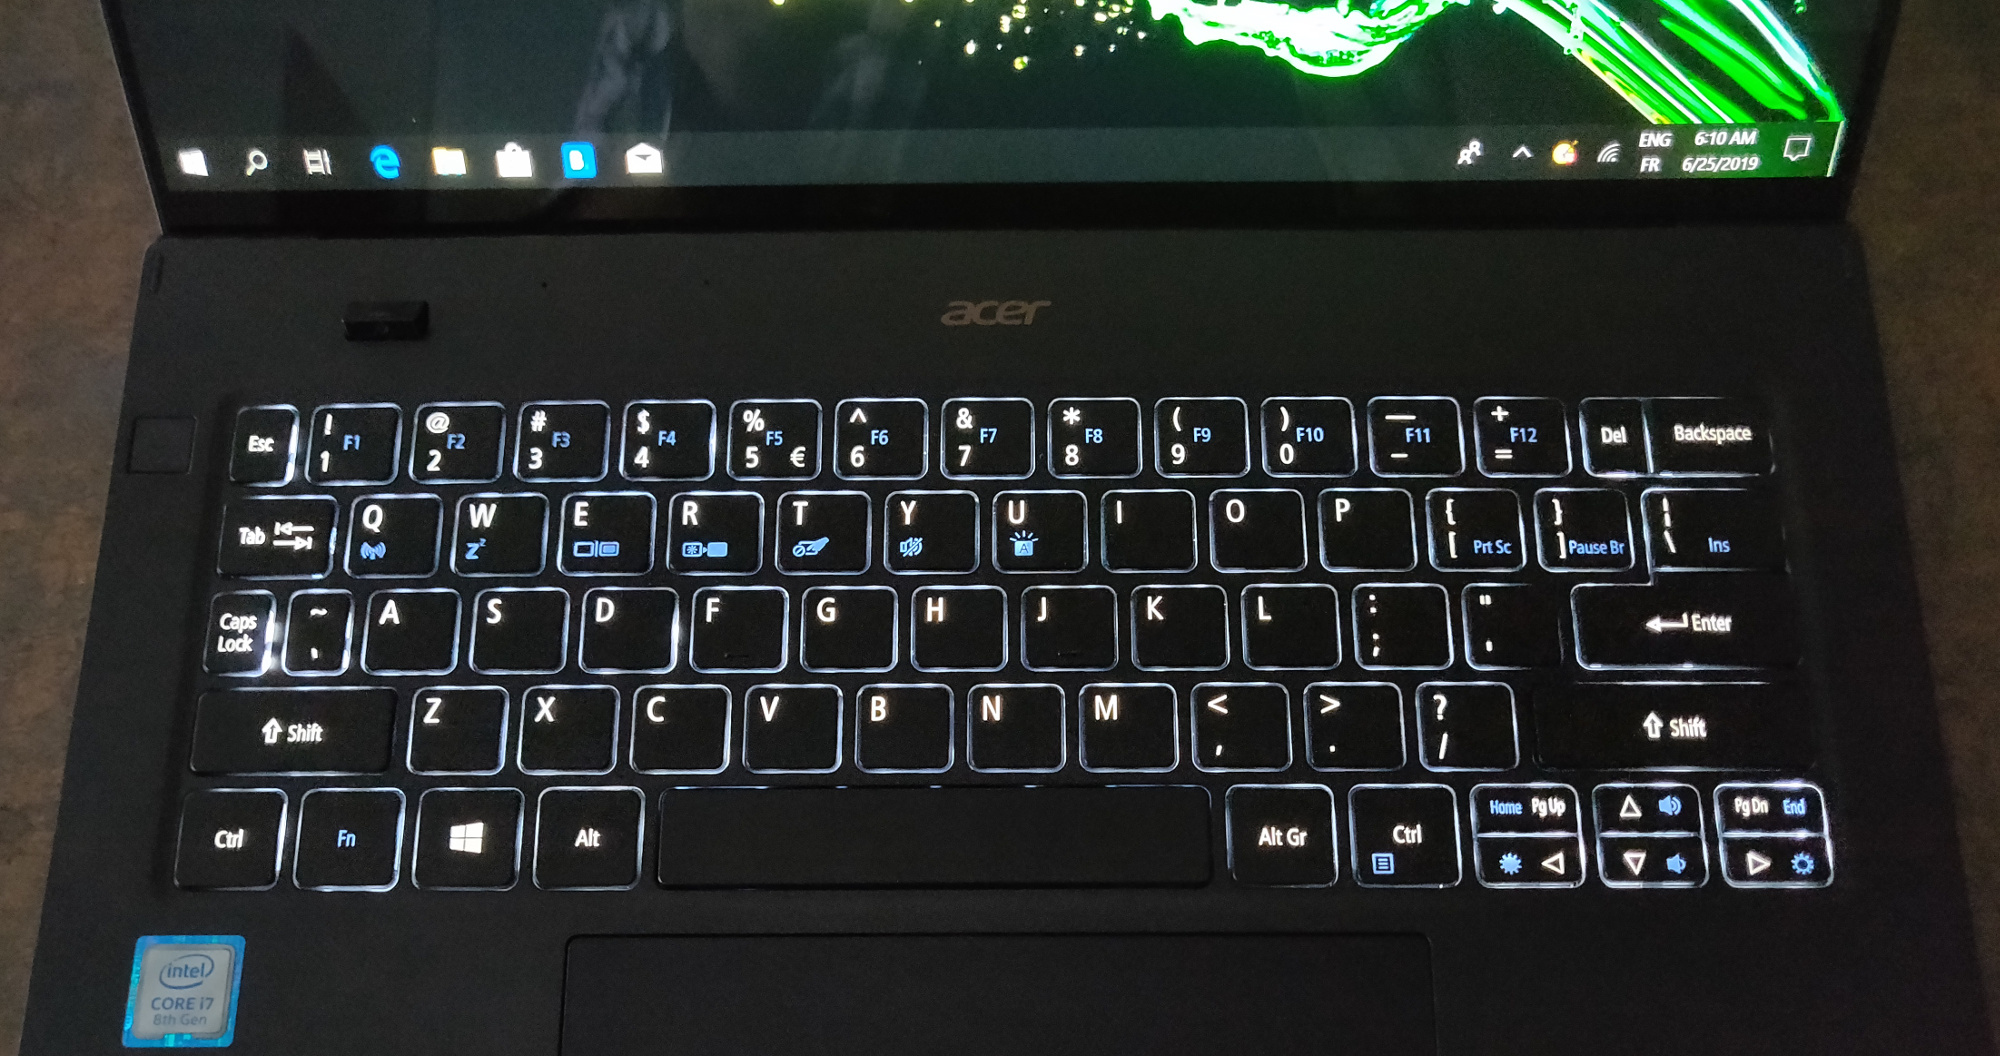 Image 12 : [Test] Acer Swift 7 : l'ultramobilité à outrance